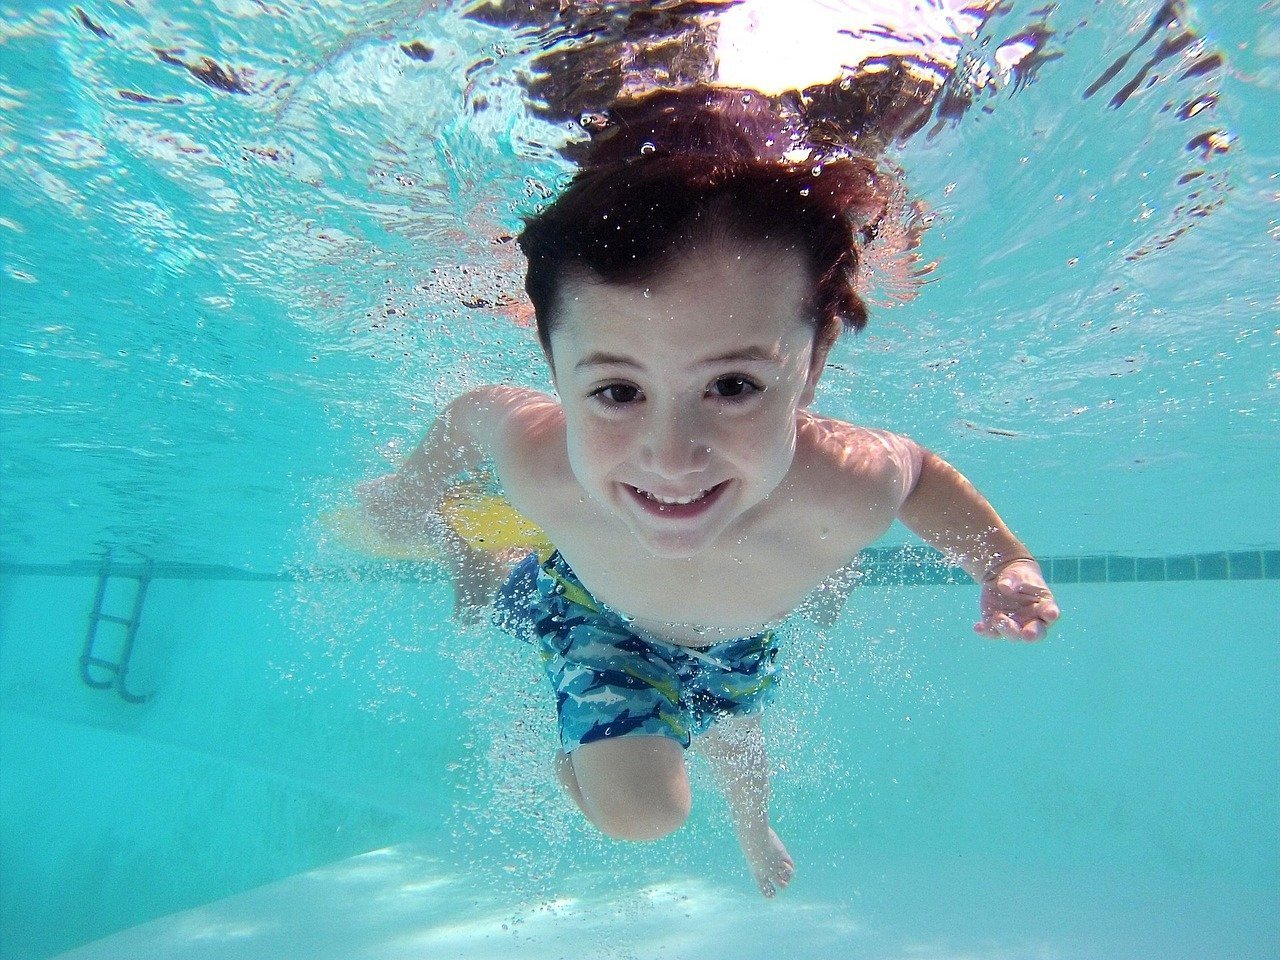 Three Tips for Pool Safety This Summer